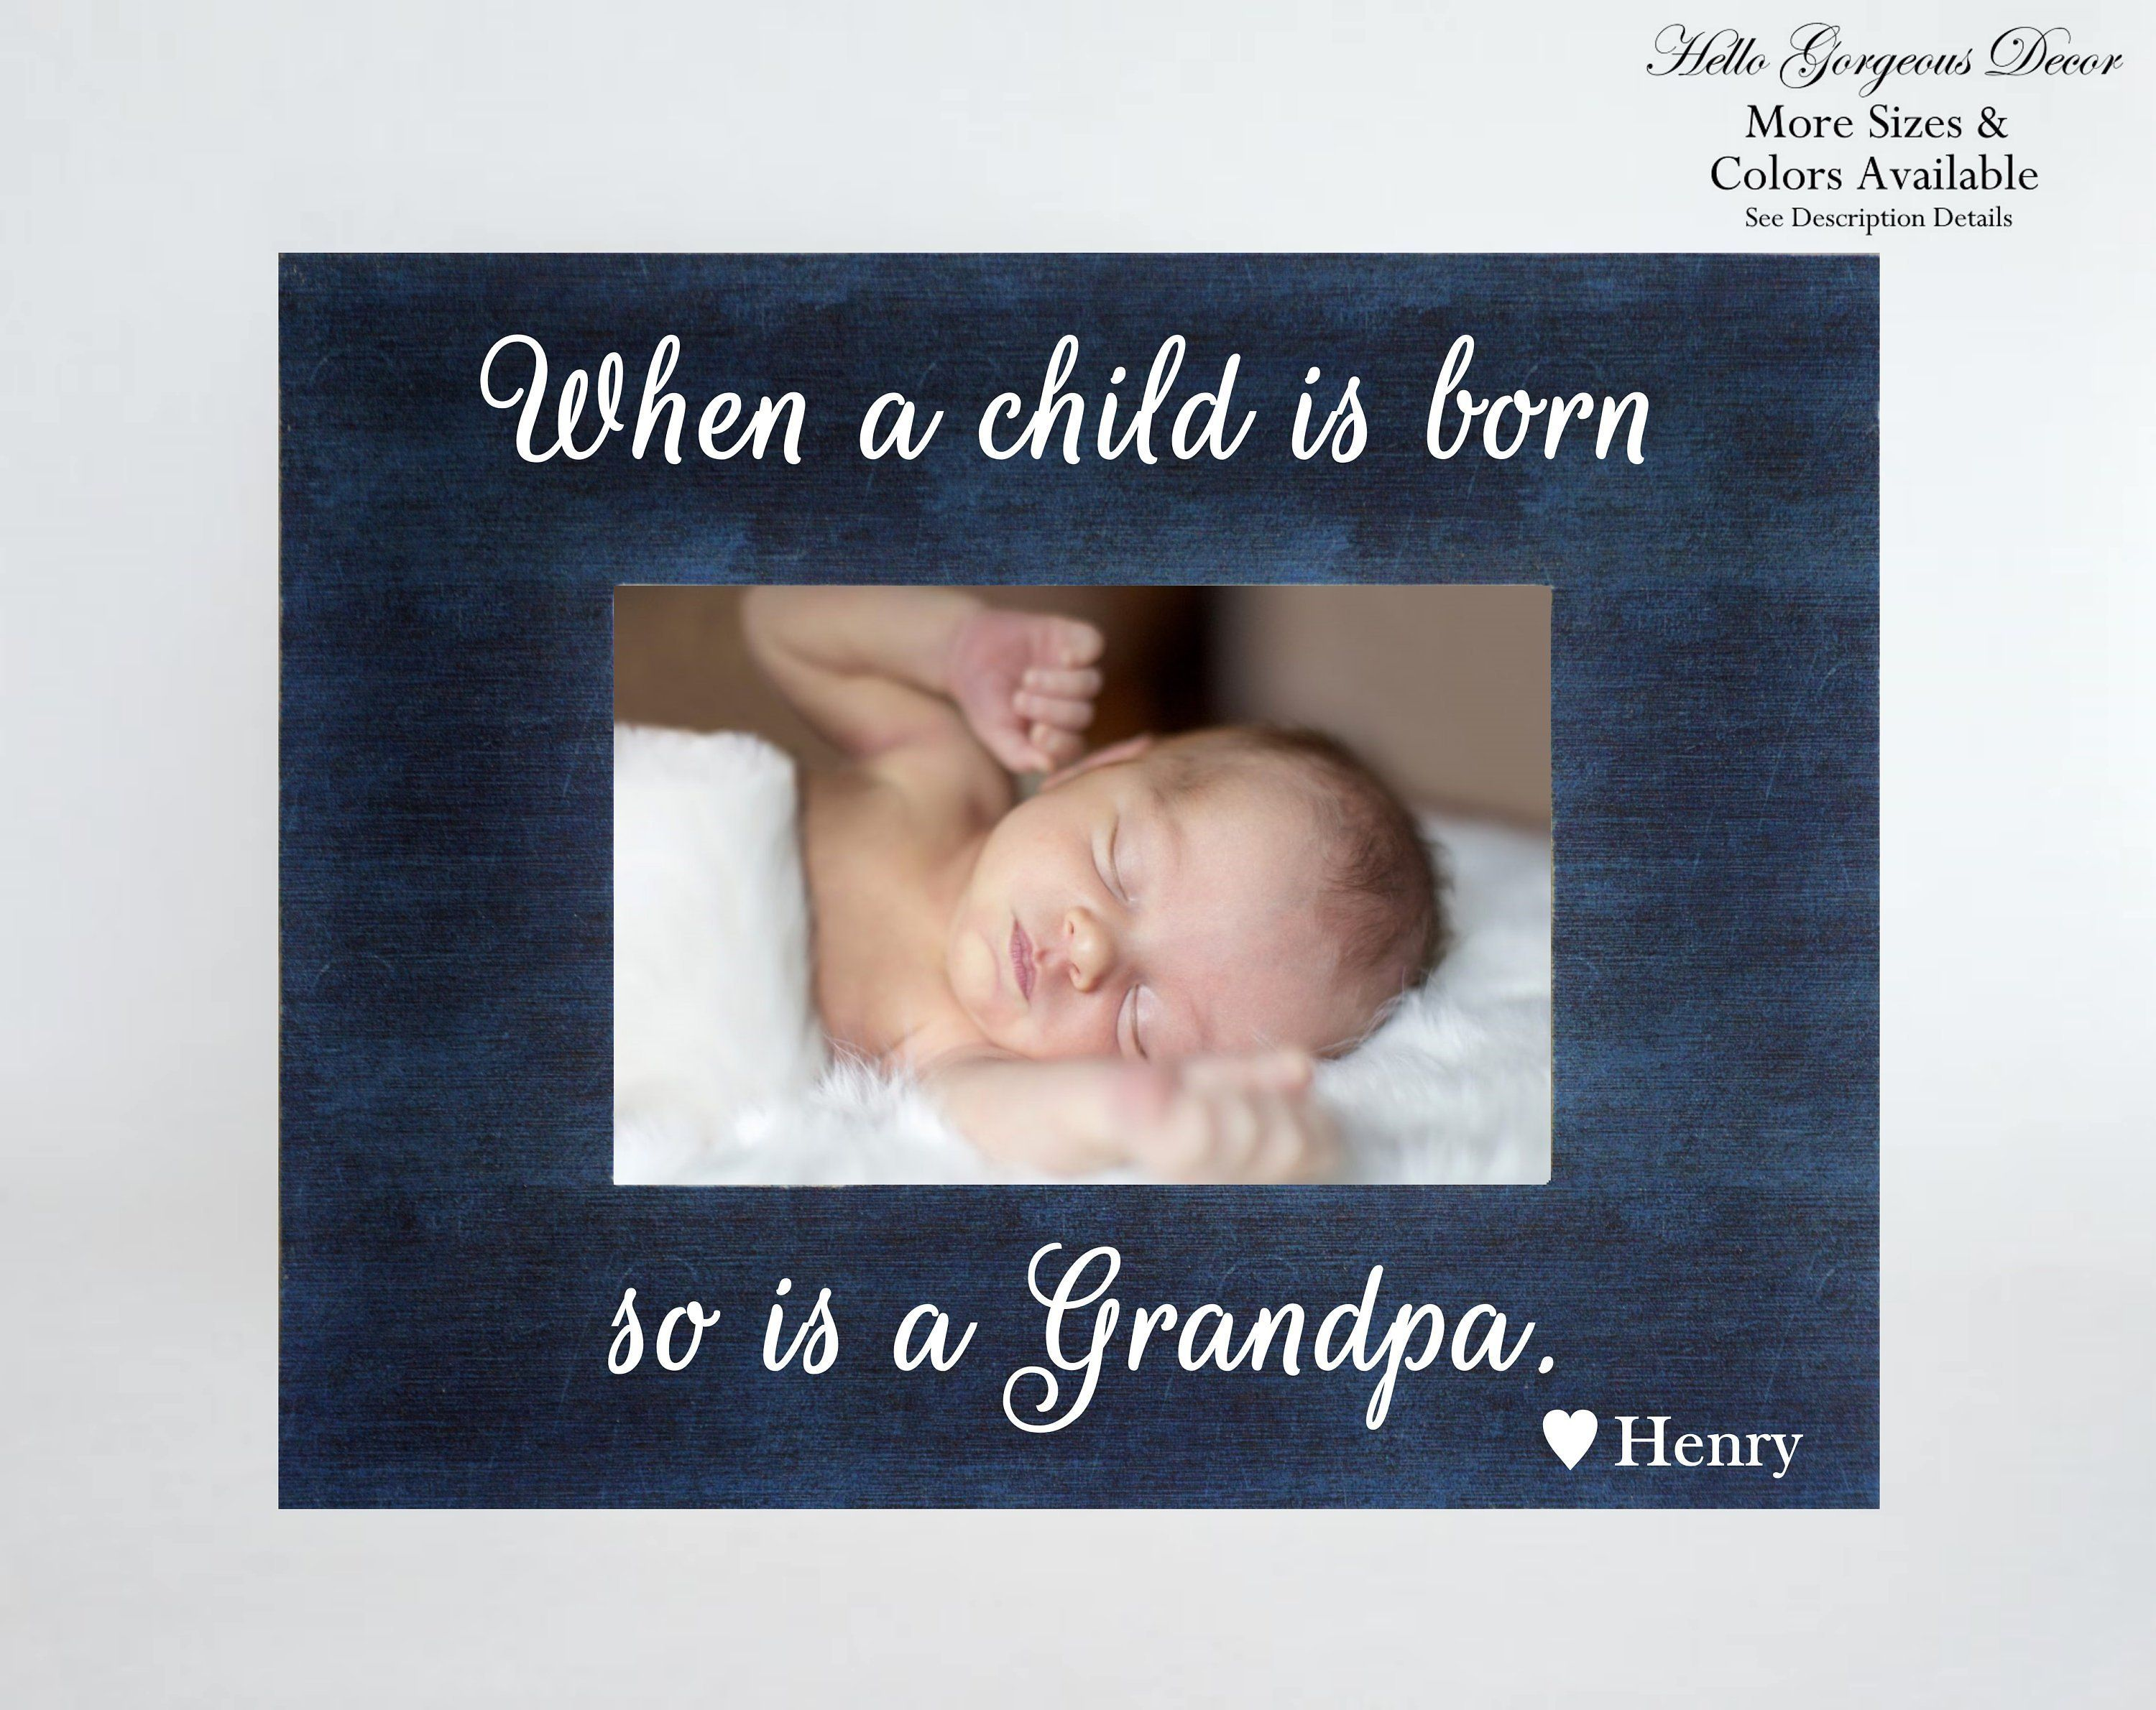 Fathers Day Gift Grandpa Gifts Grandfather Frame Engraved Gift for Grandpa Grandfather Gift Pop Pop Gifts, Engraved Picture Frame